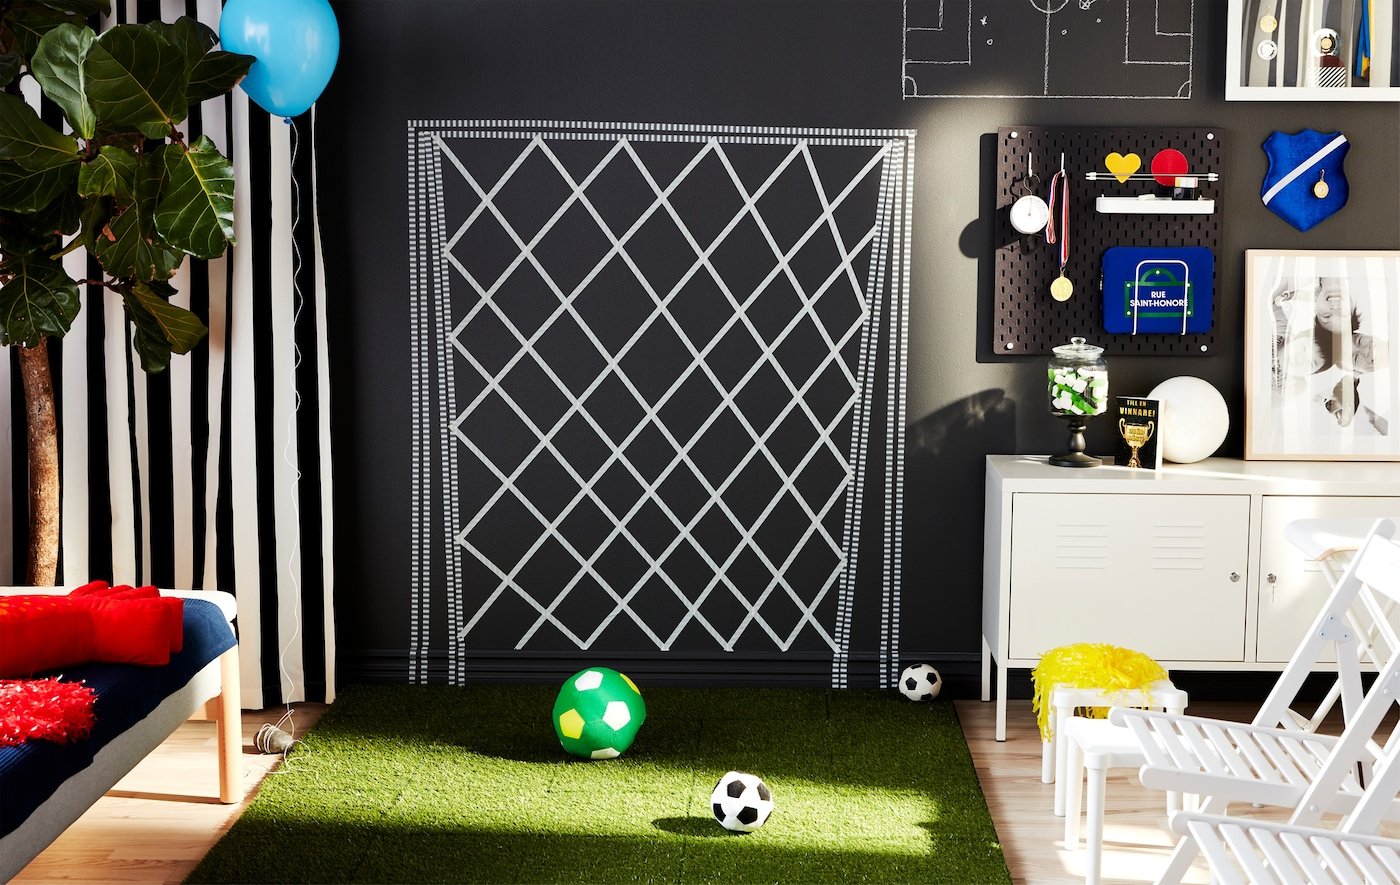 Living room with a tape-on-the-wall football goal, a patch of artificial grass, balls, seating and supporter paraphernalia.